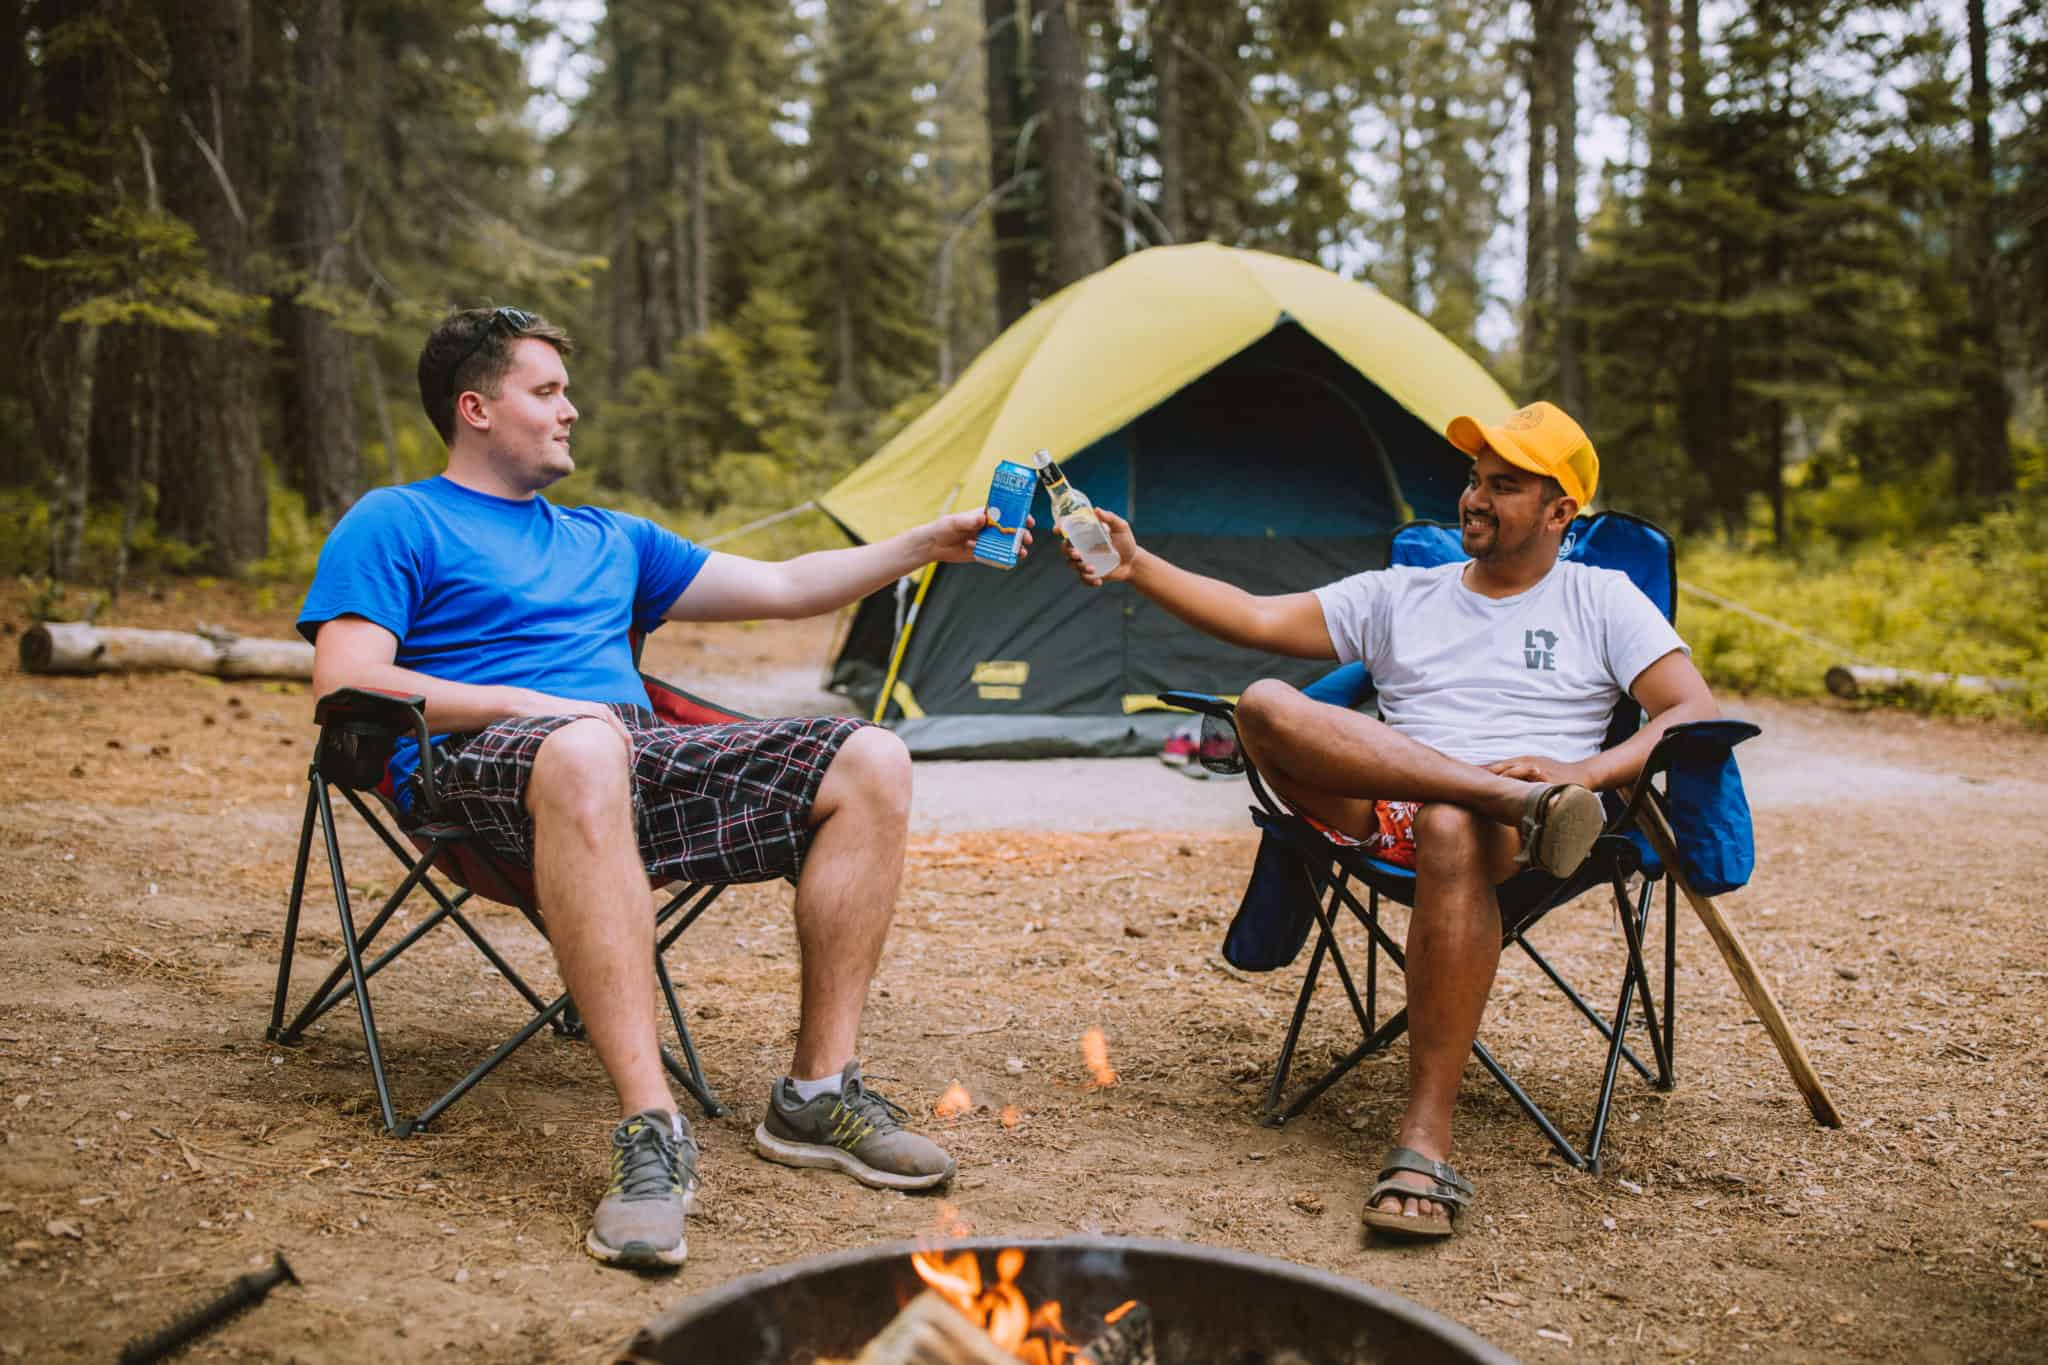 Camping Checklist - Chairs